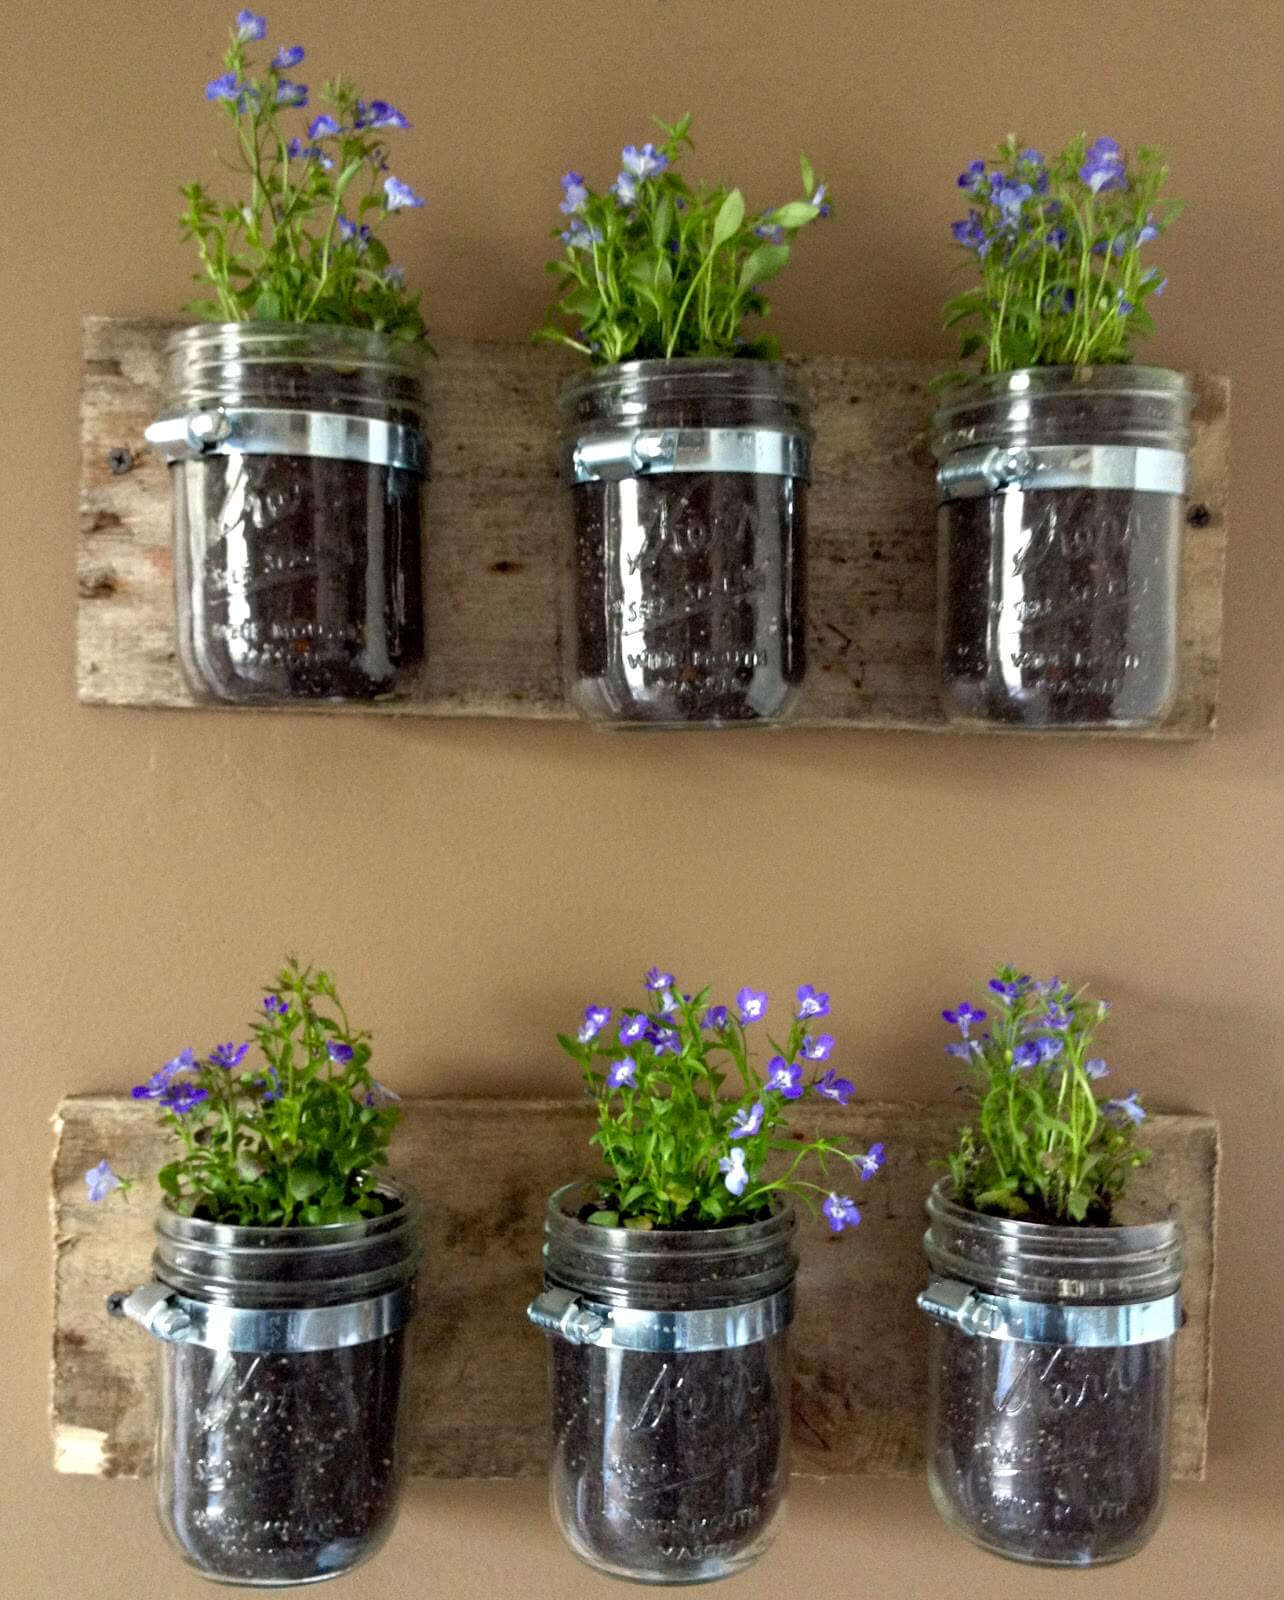 Hanging Mason Jars with Growing Flowers